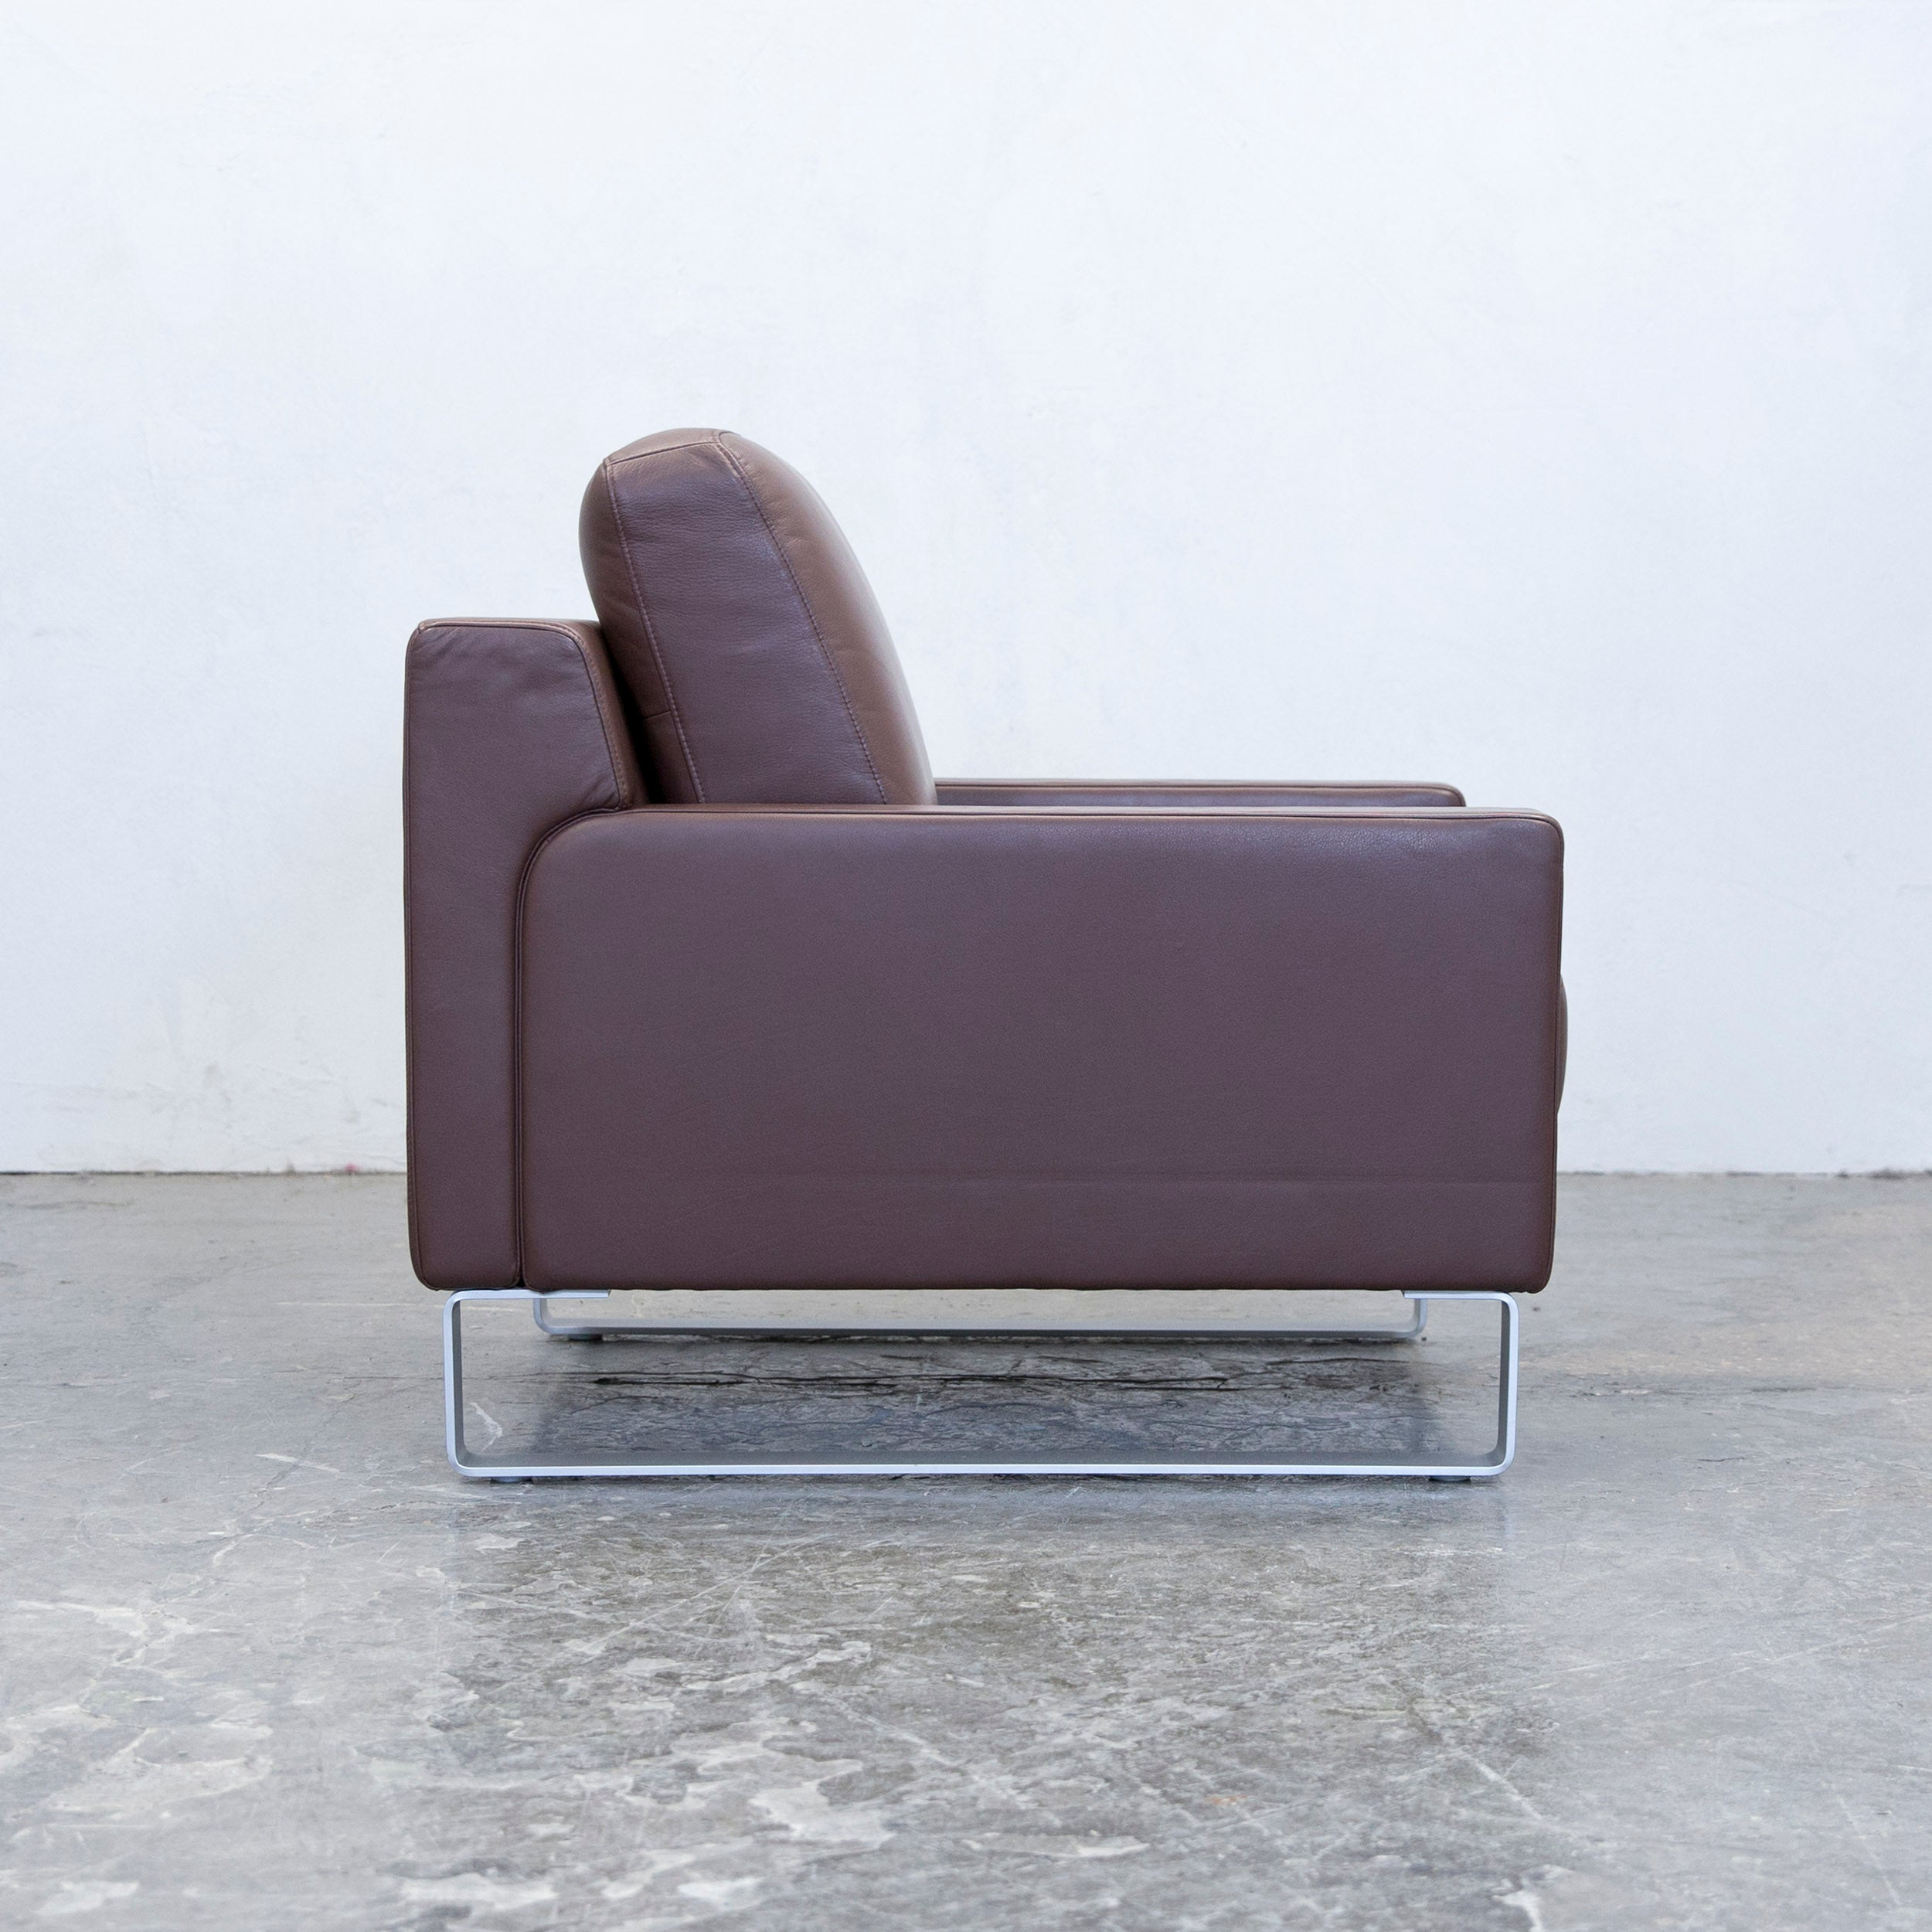 rolf benz 684. Rolf Benz 684. Ego Designer Armchair Leather Brown One Seat Couch Modern At 684